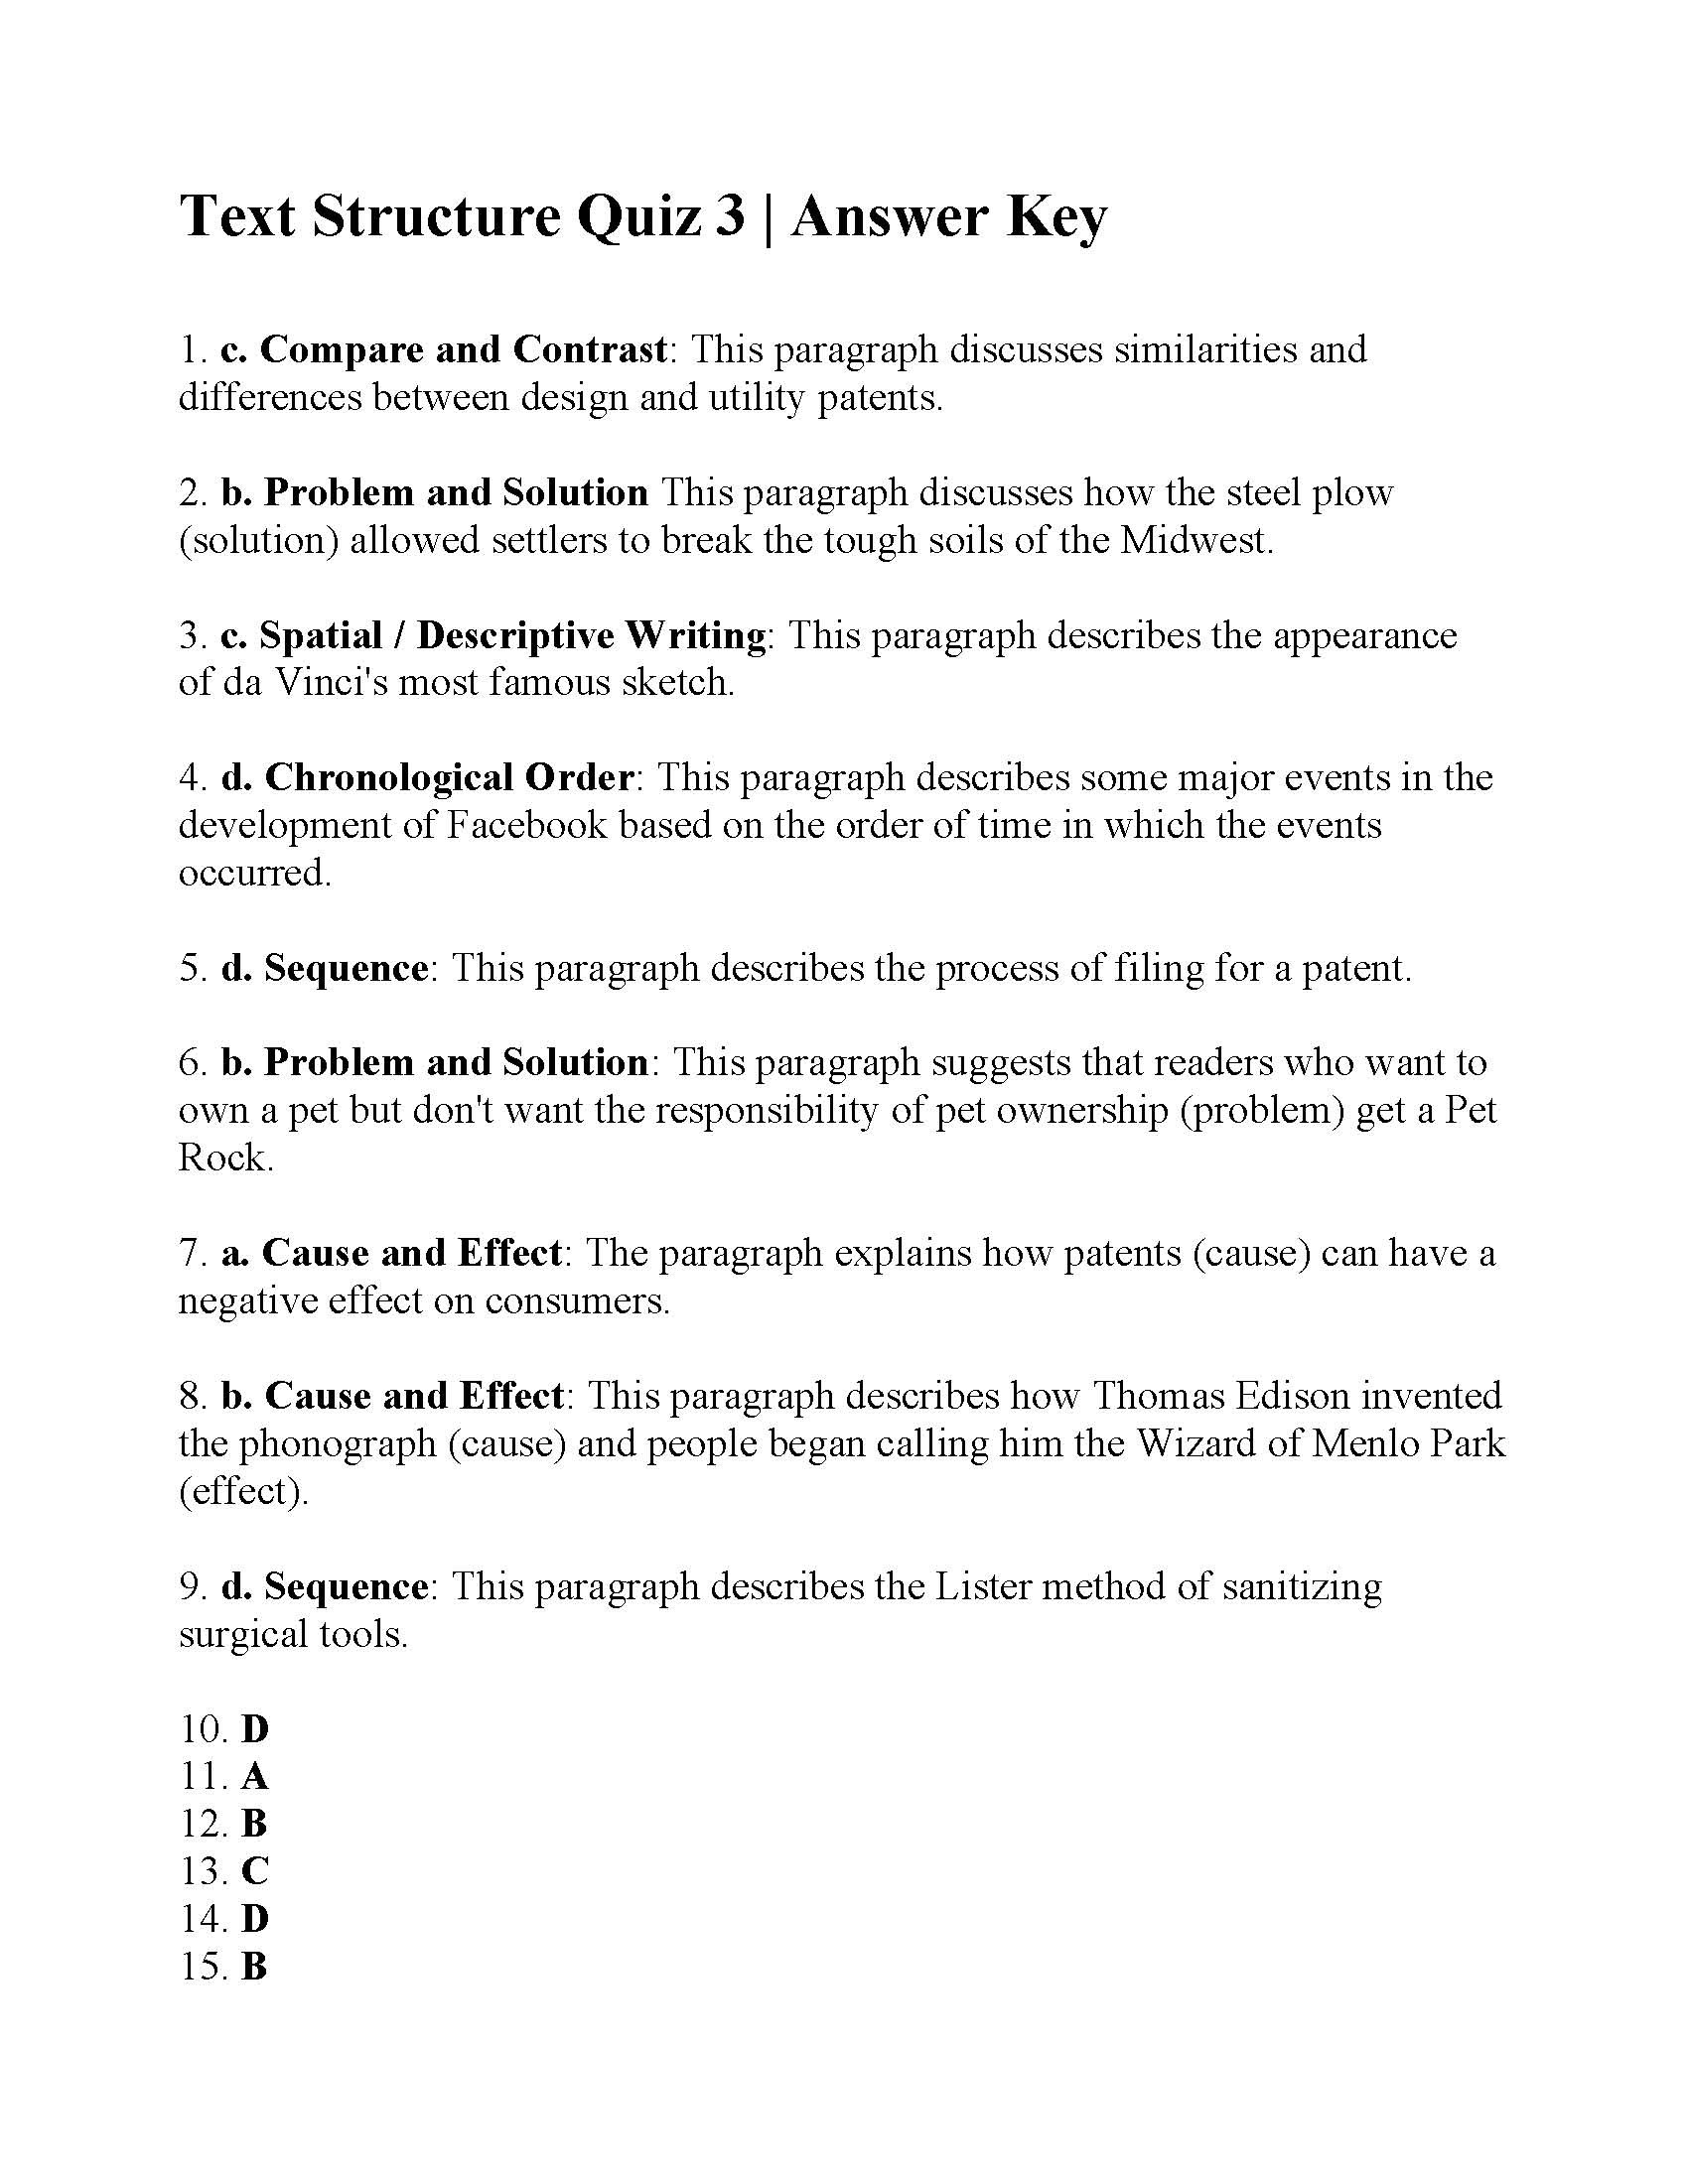 Text Structure 4th Grade Worksheets Adding Improper Fractions Worksheet with Answers Merit Badge